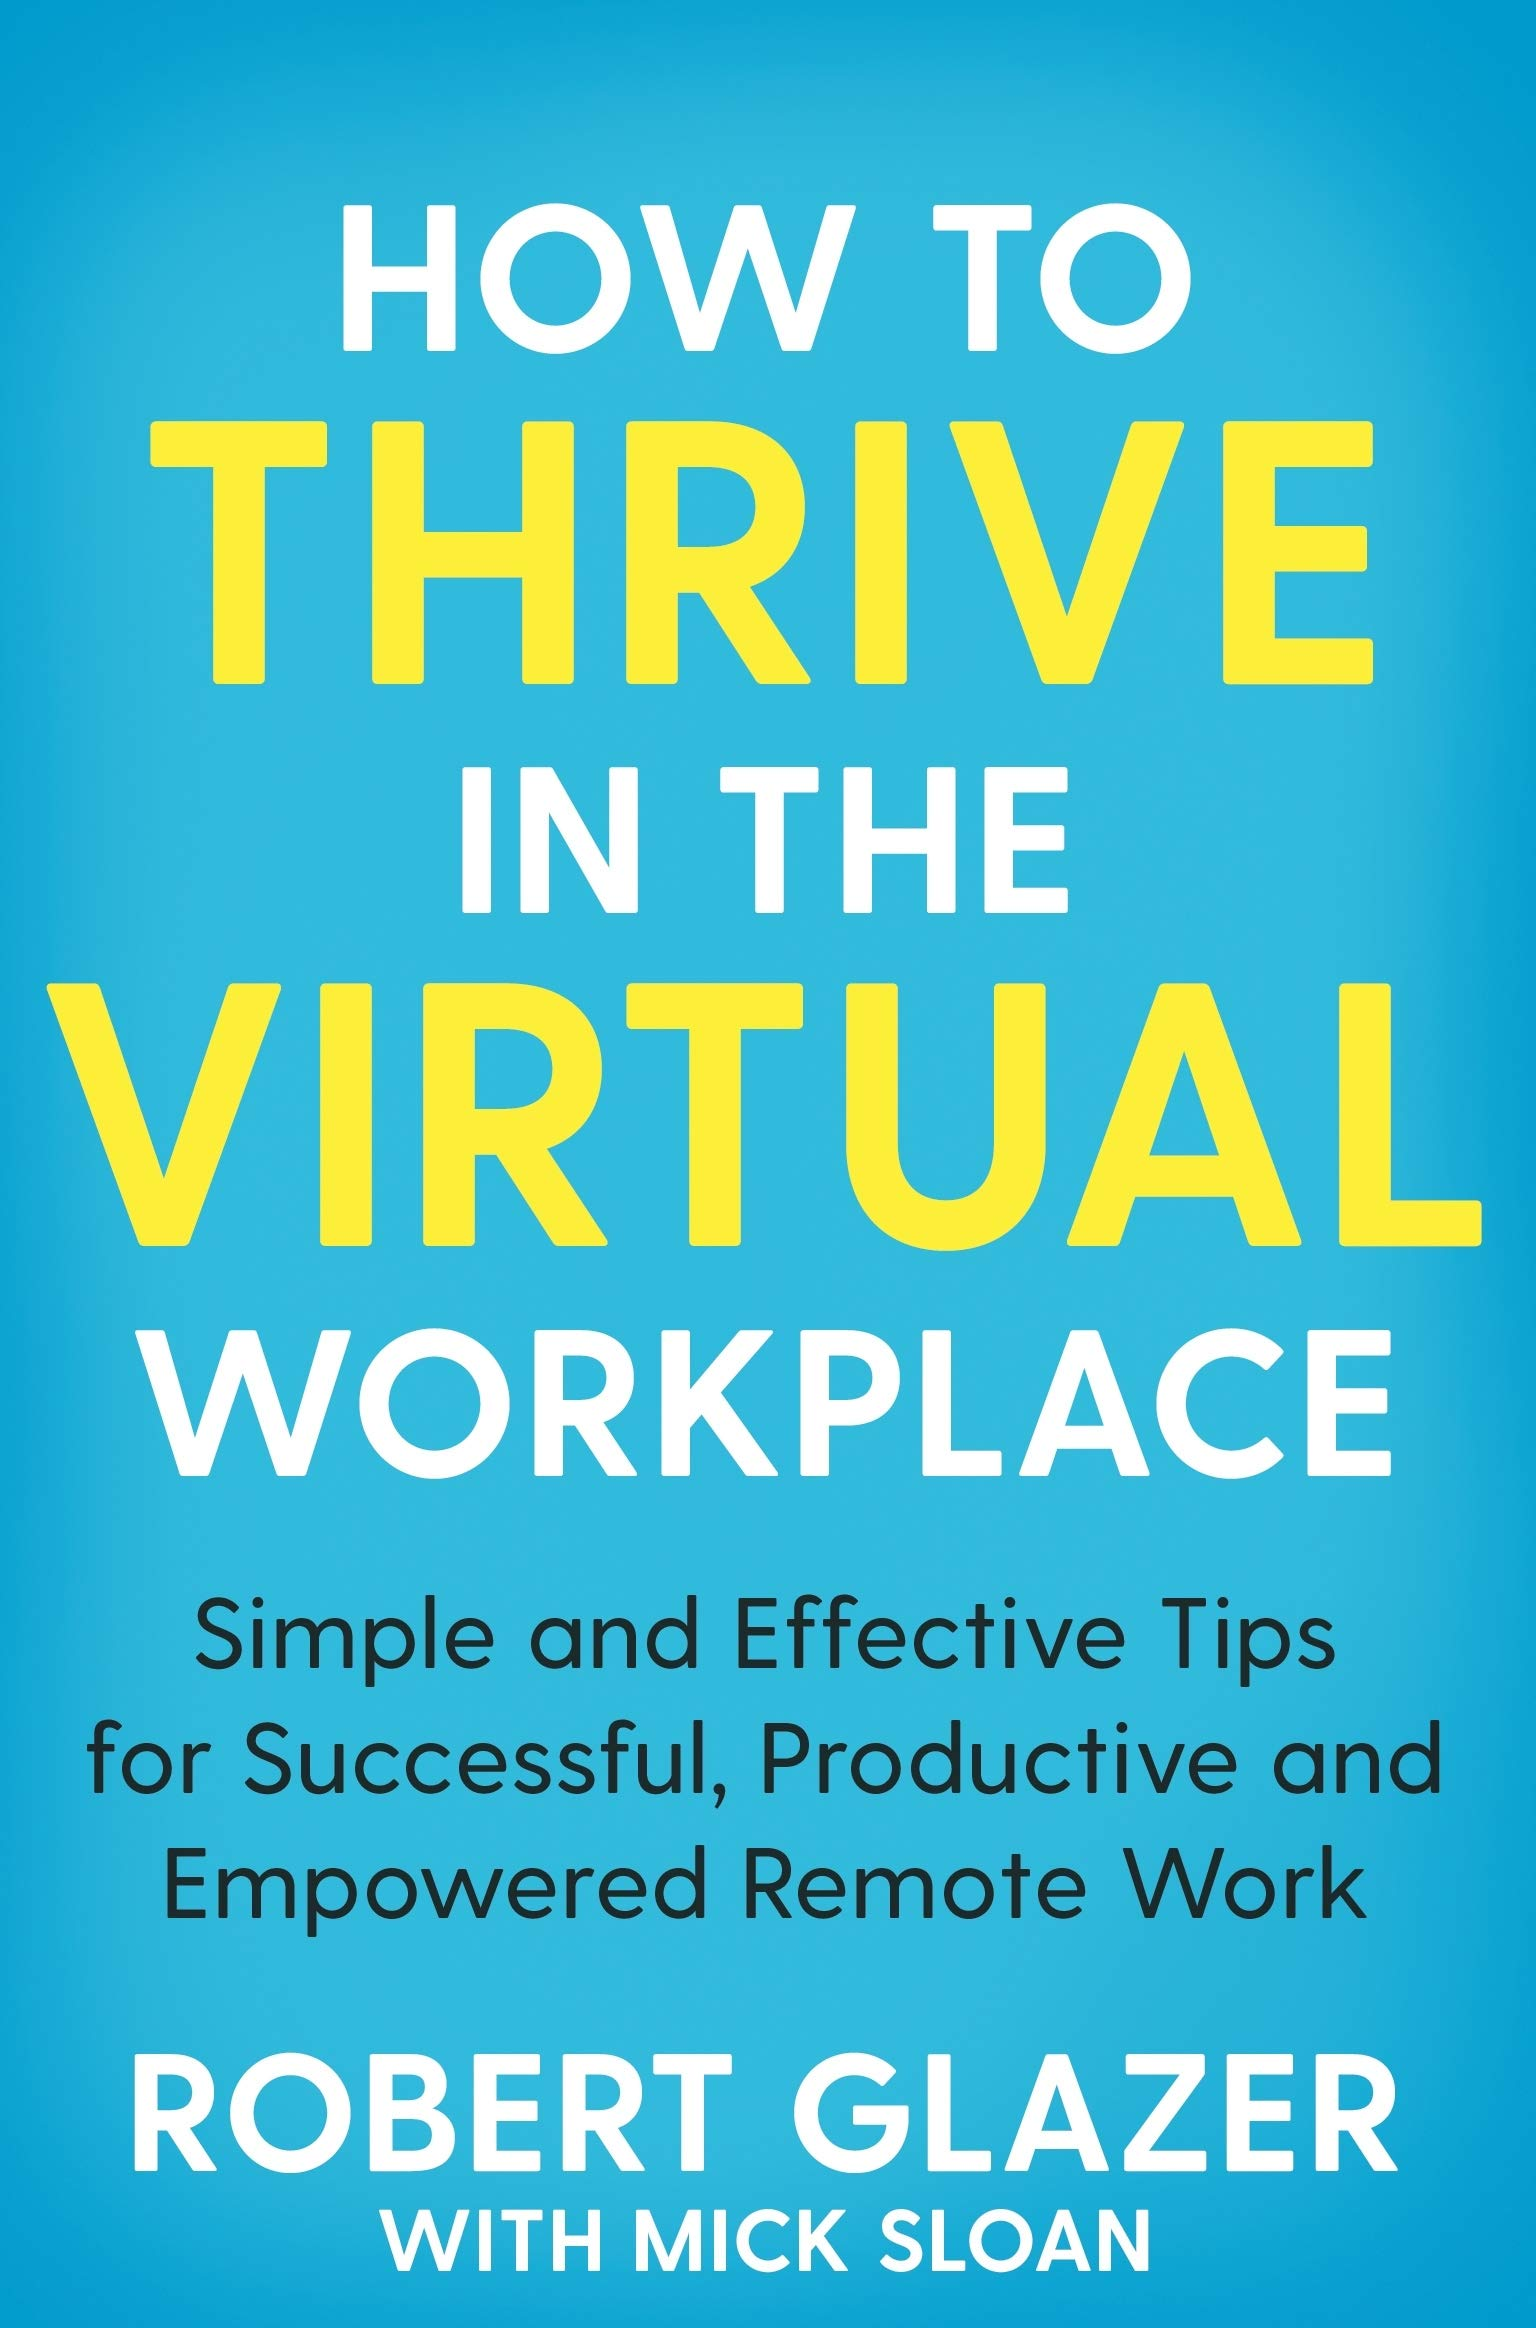 How to Thrive in the Virtual Workplace: Simple and Effective Tips for Successful, Productive and Empowered Remote Work: Glazer, Robert: 9781529068252: Amazon.com: Books